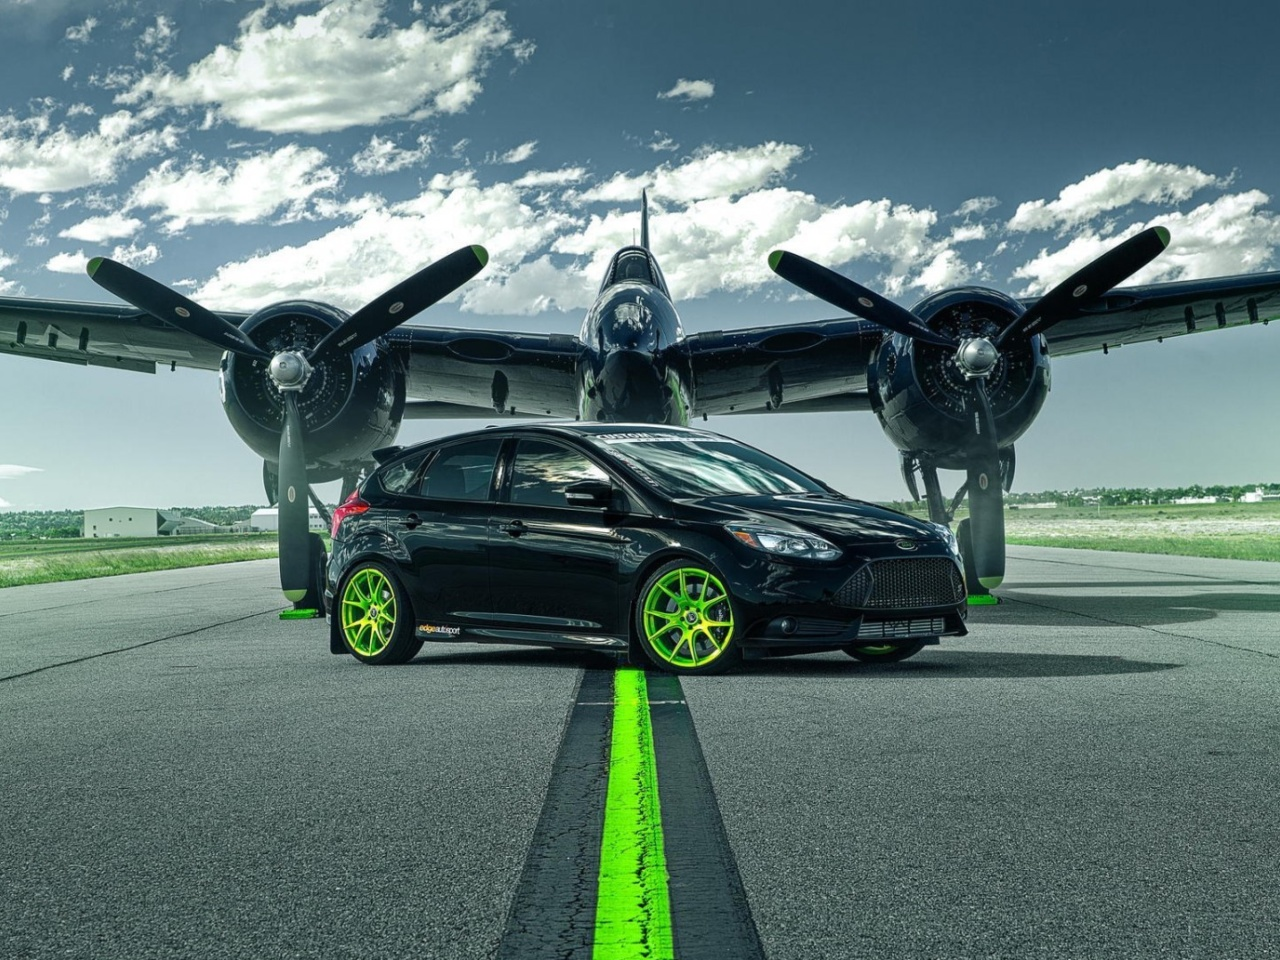 Das Ford Focus ST with Jet Wallpaper 1280x960